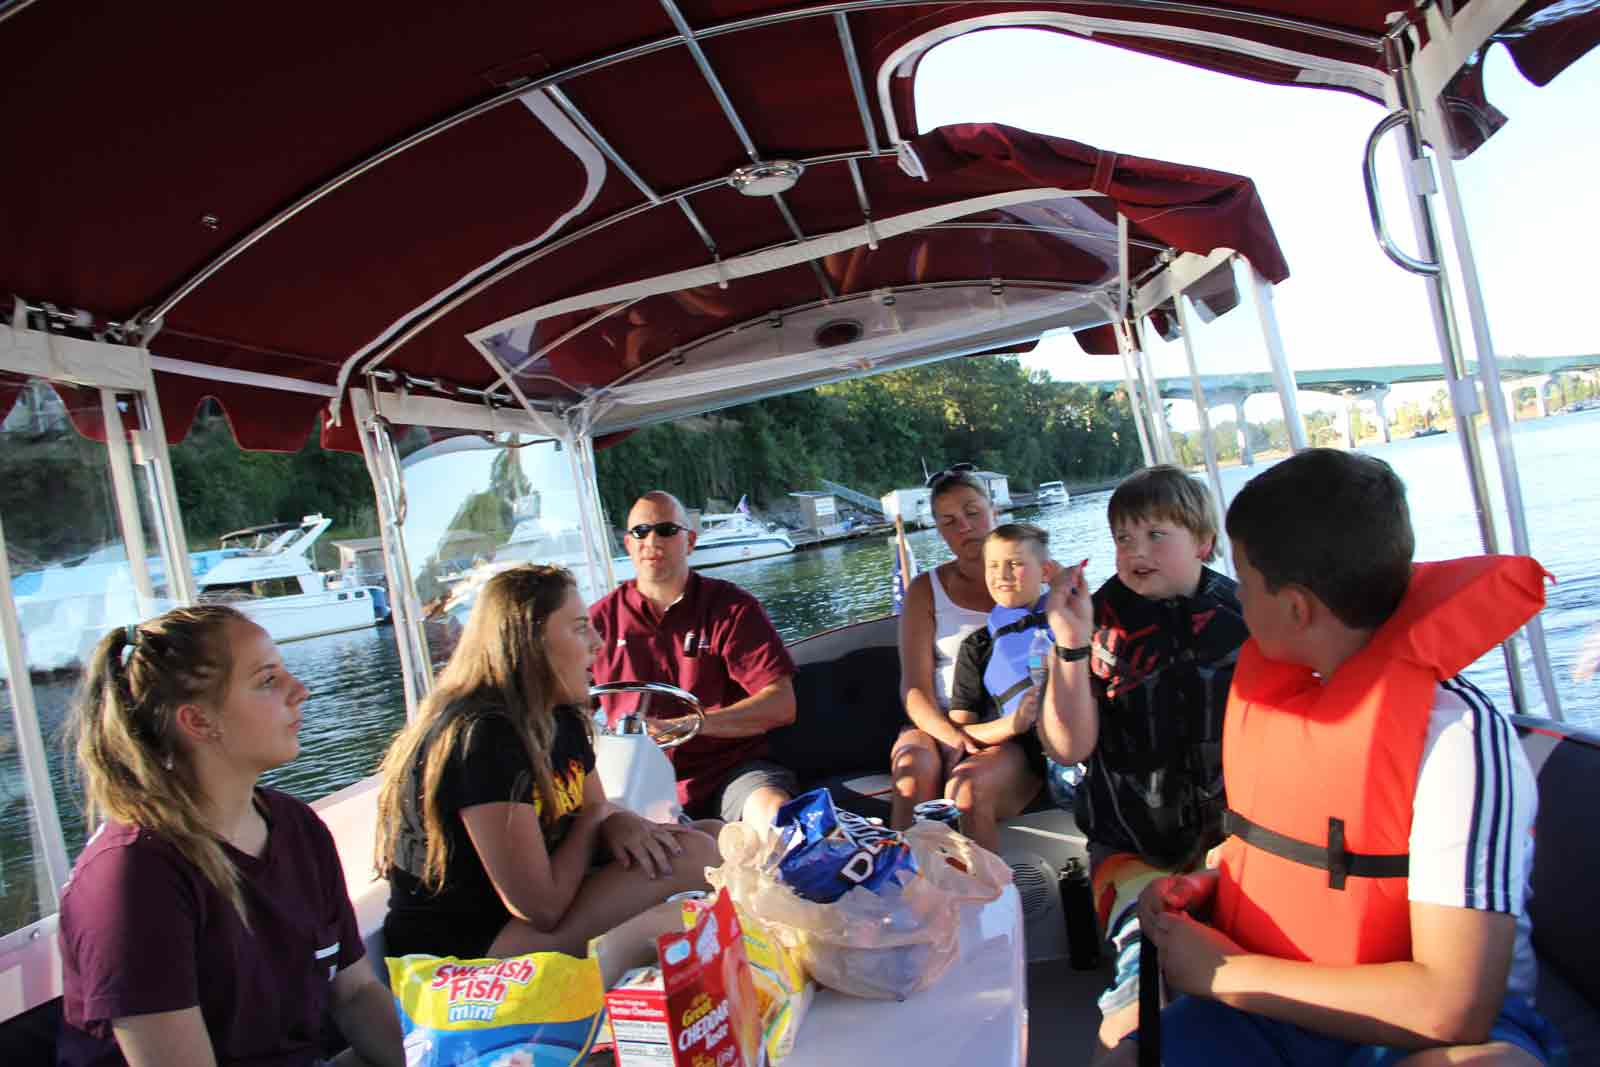 More fun on the boat!